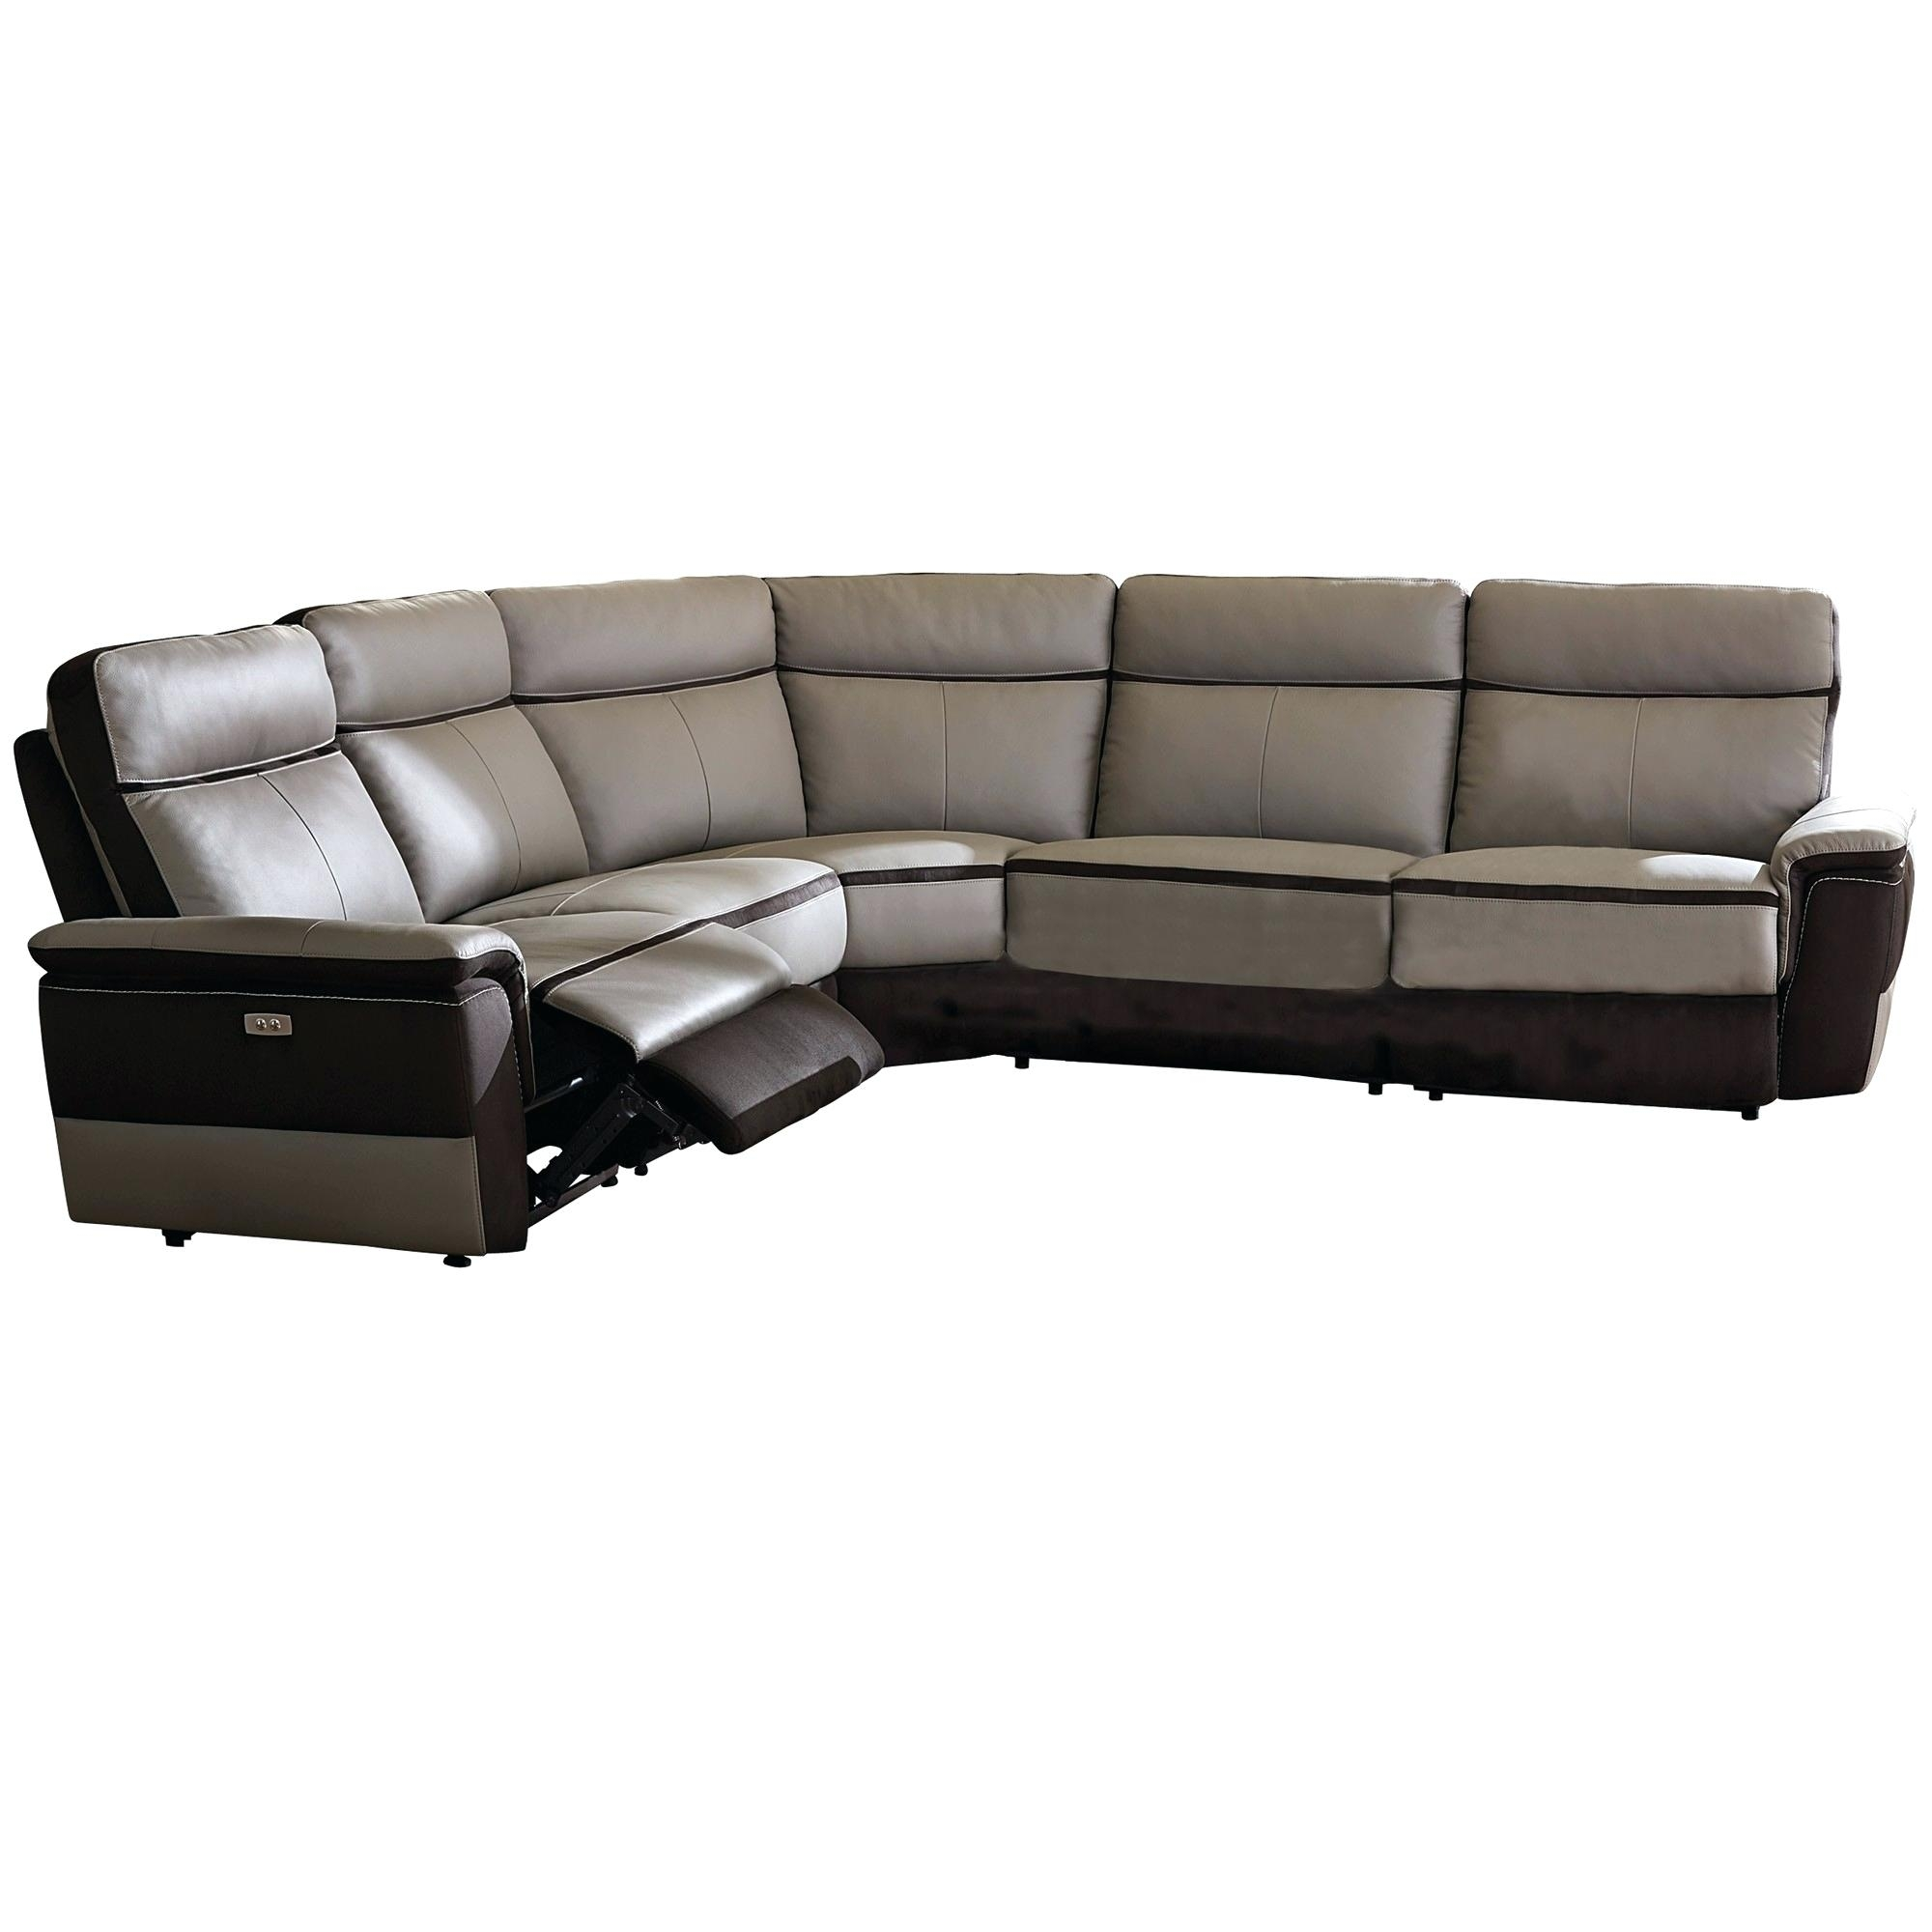 Leather Furniture Vancouver 10 43 Choices Of Vancouver Sectional Sofas Sofa Ideas